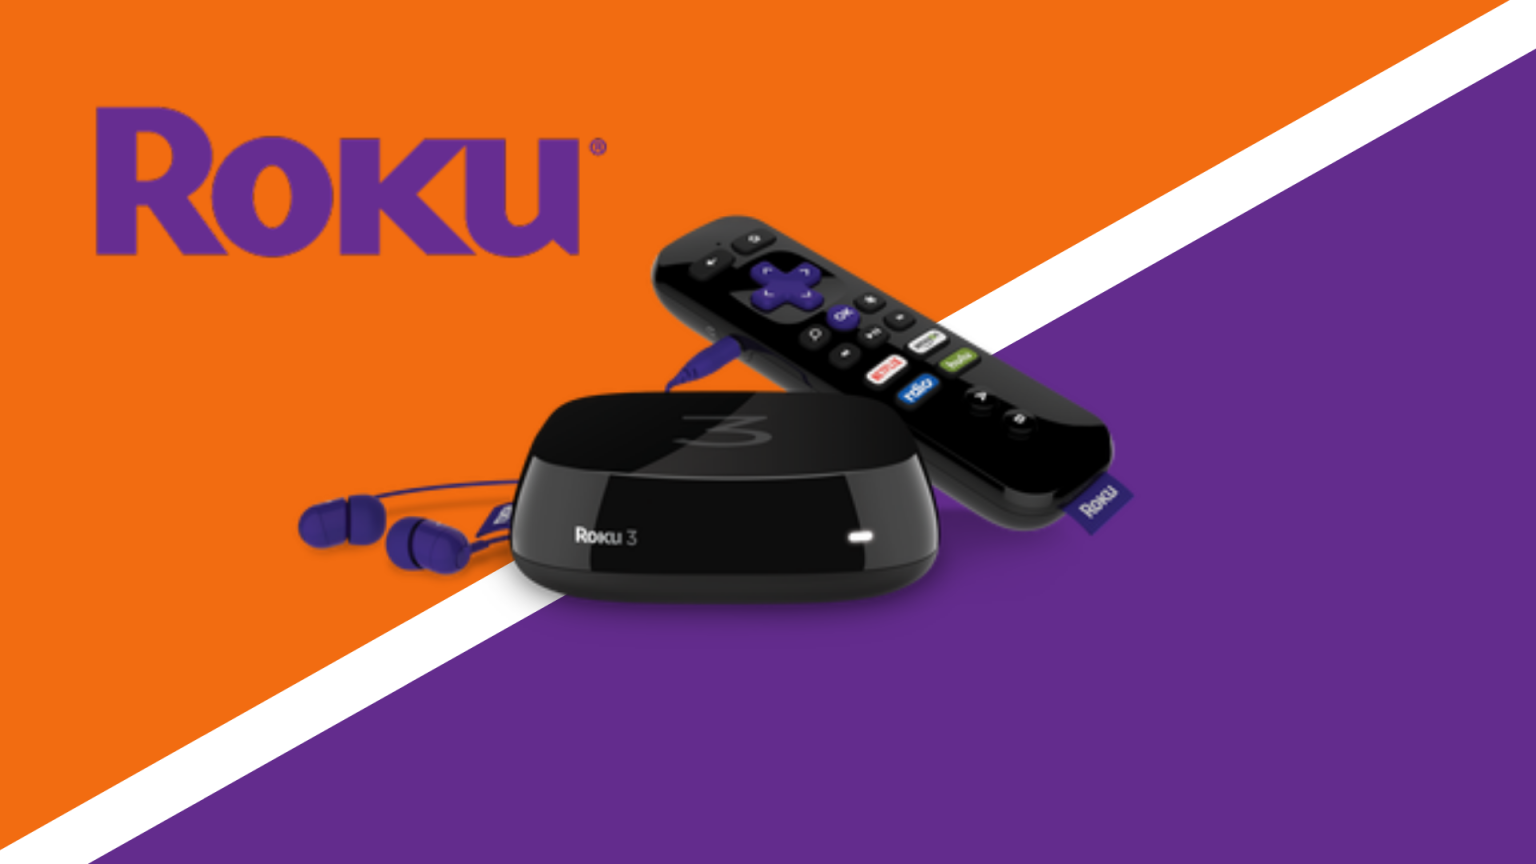 Roku sees a rise in Q2 sales beating expectations and other top news